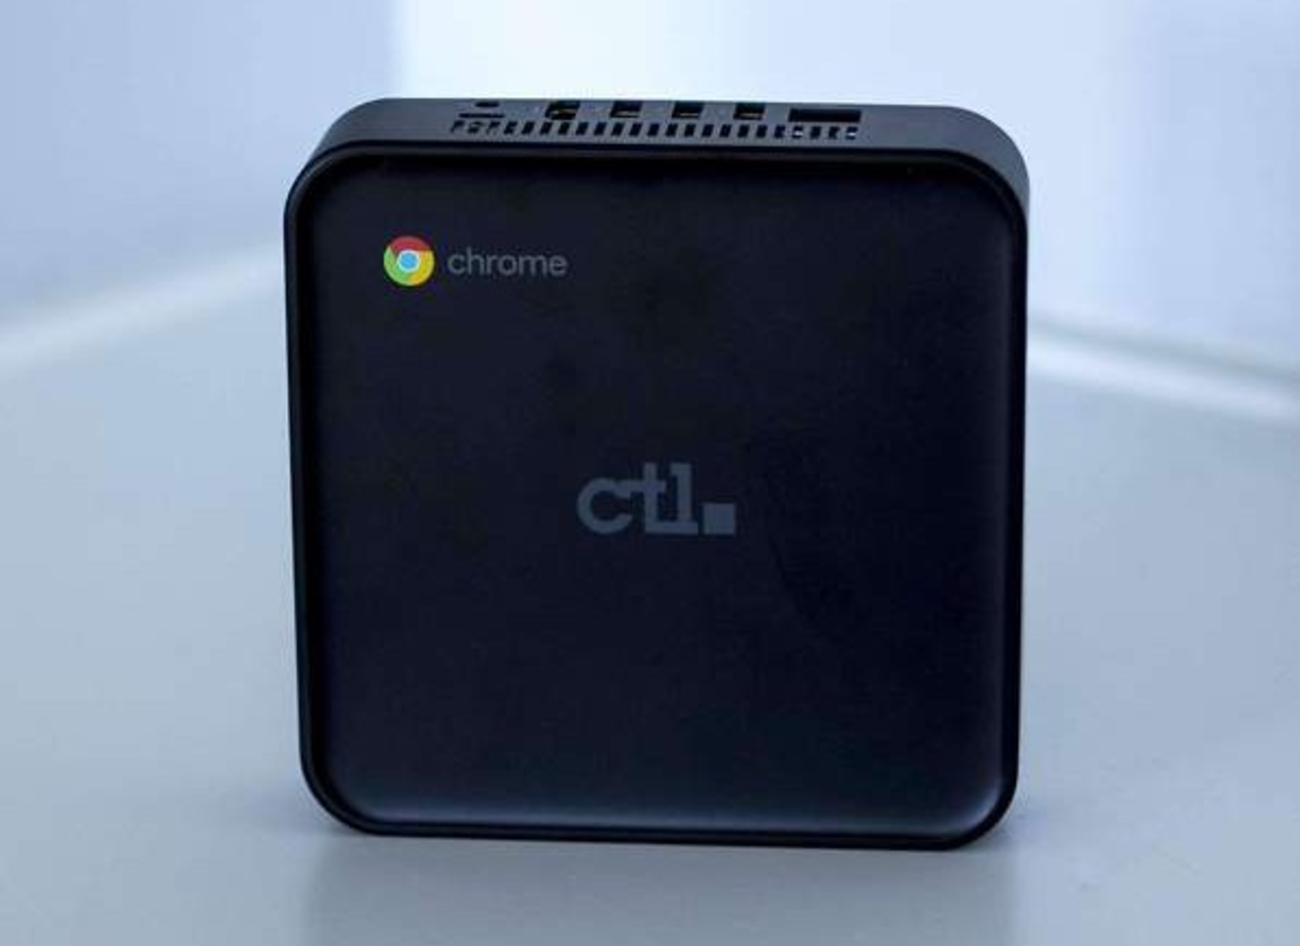 Deal Alert: Get an extra 10% off this customizable Chromebox from CTL